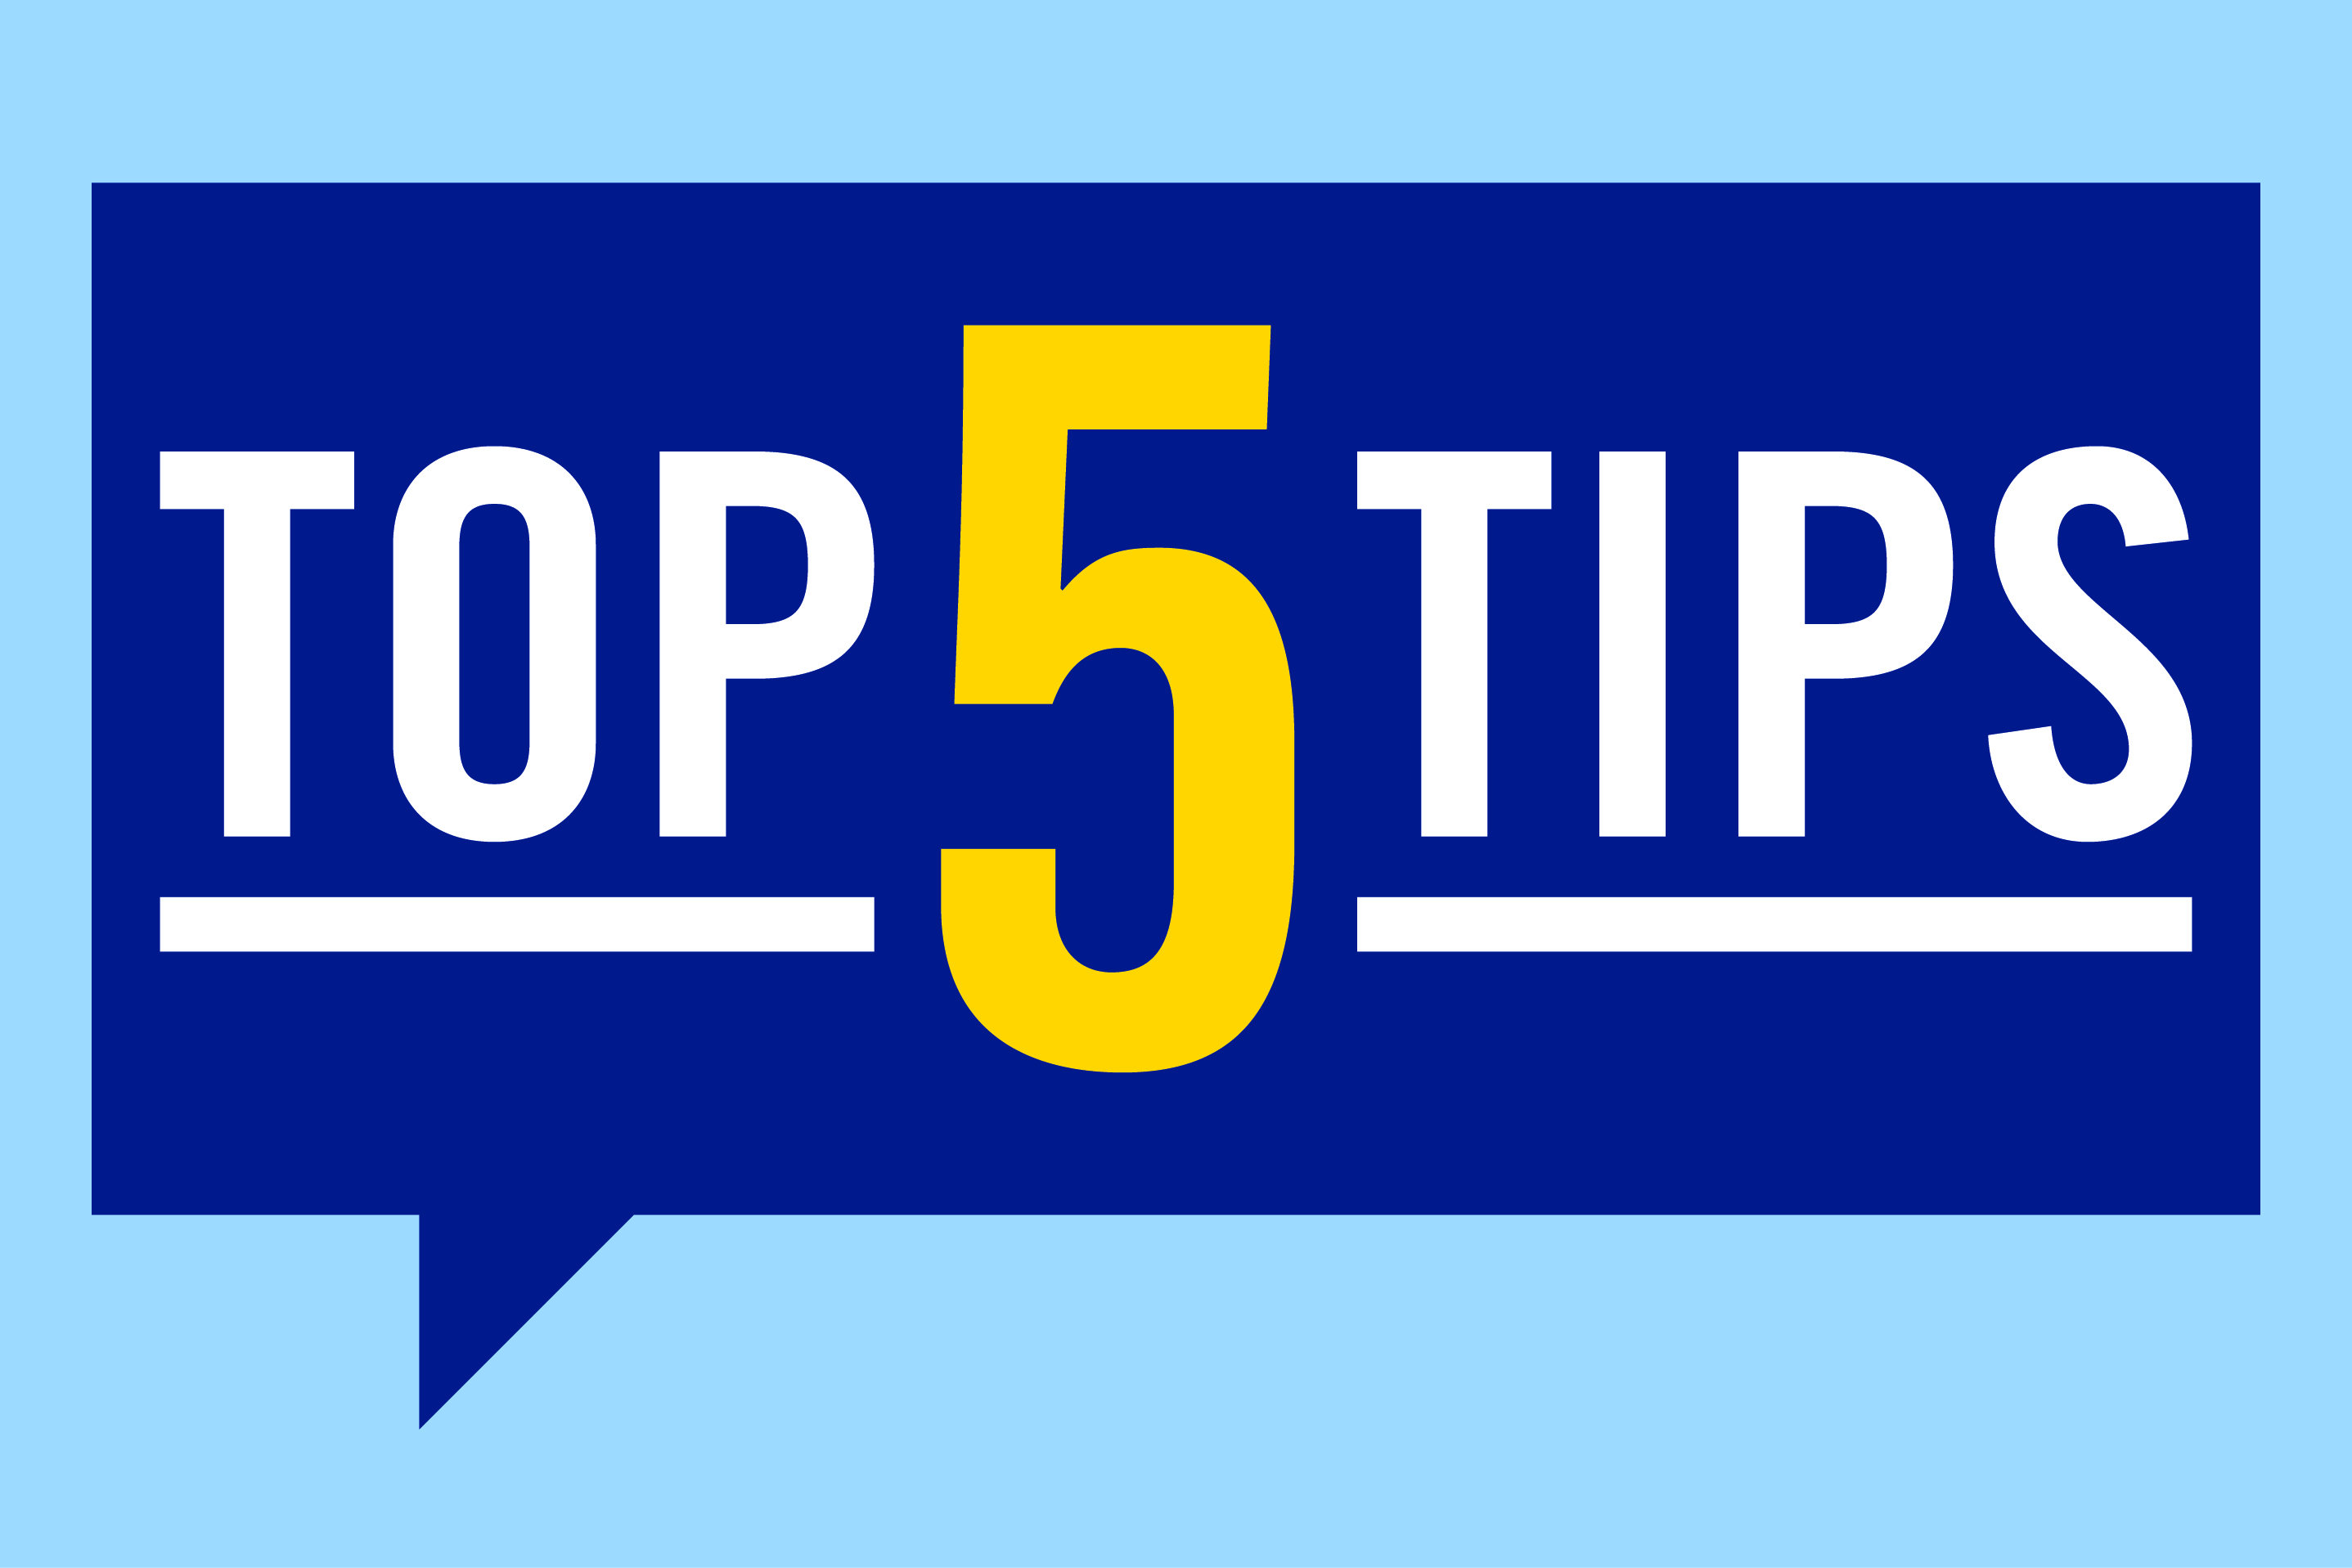 Top five tips image